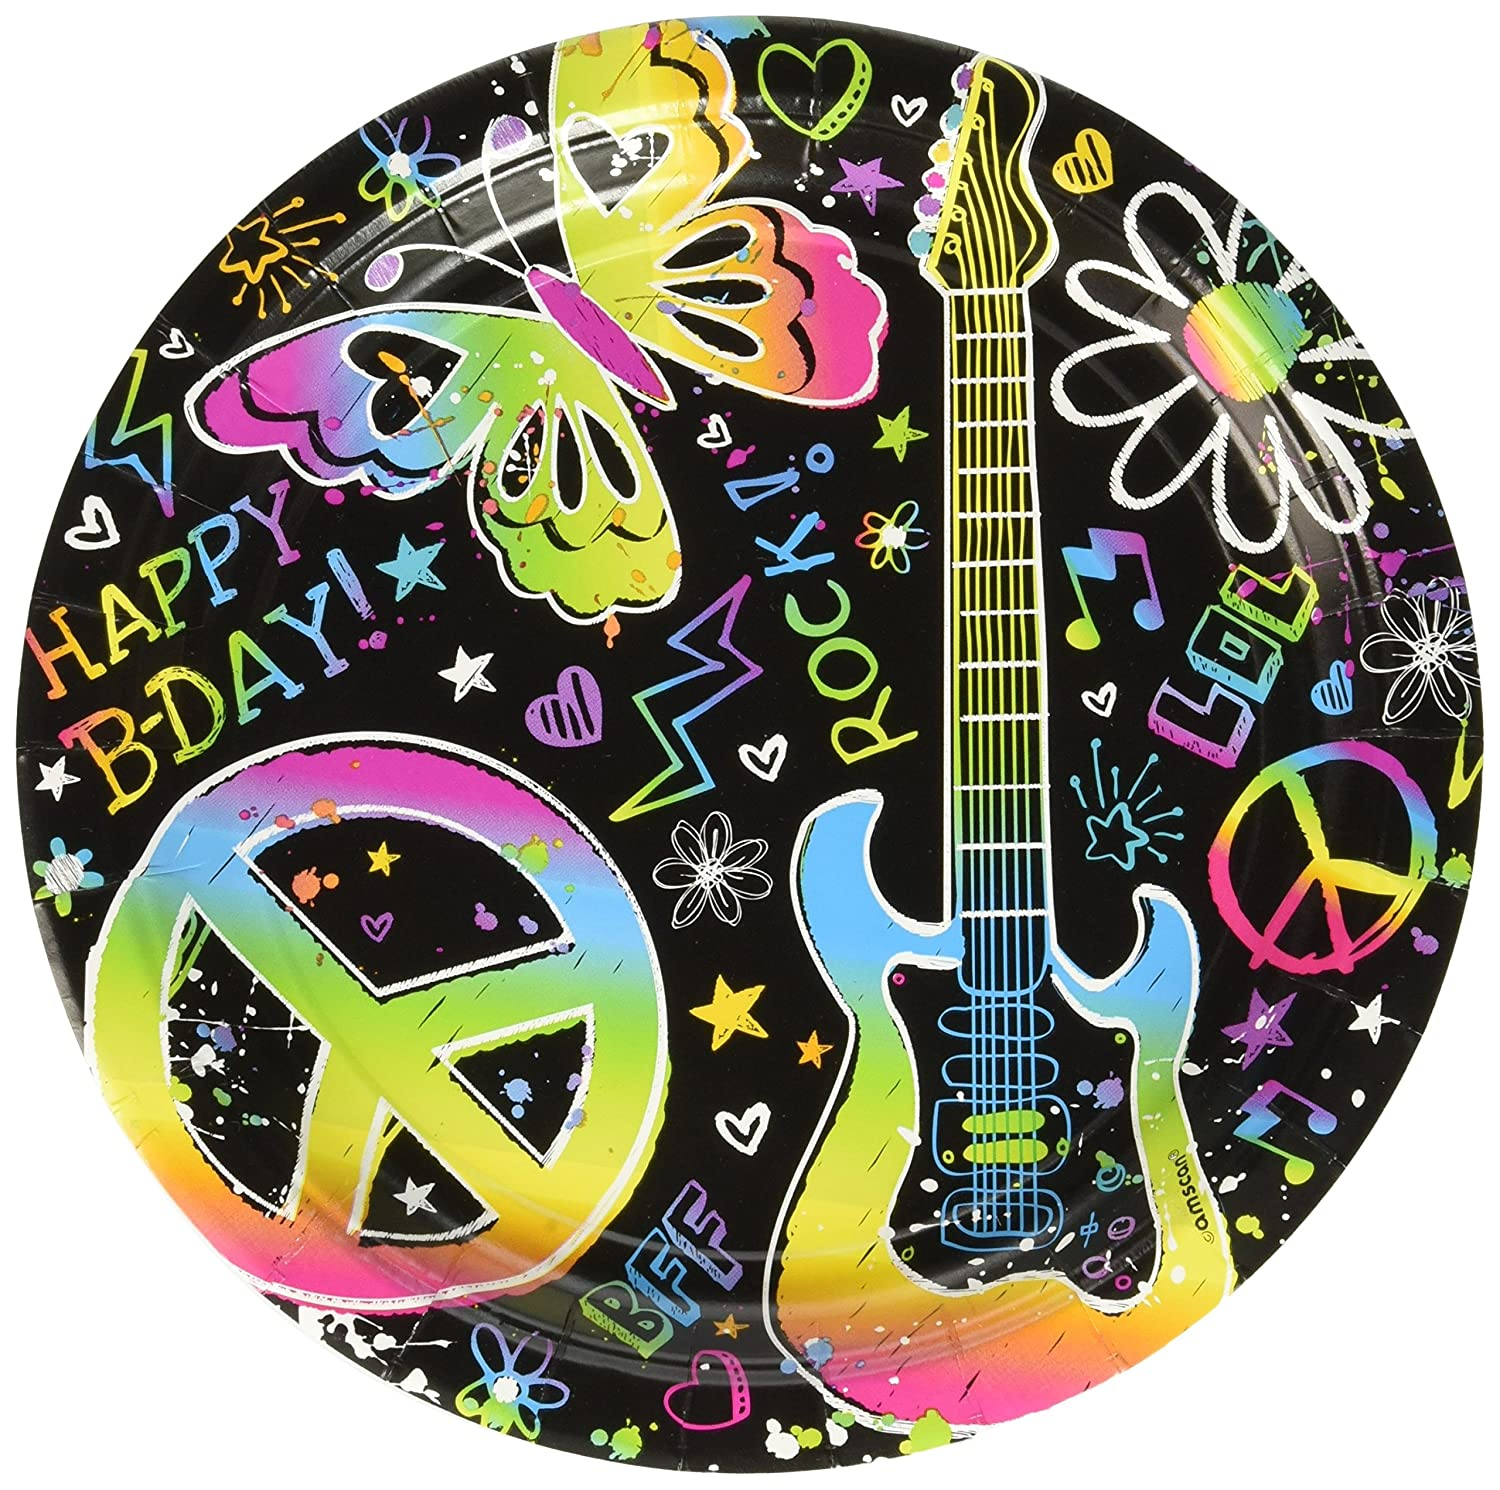 8 Pack Multicolor 9 amscan Groovy Neon Doodle Birthday Party Lunch Paper Plates Disposable Tableware